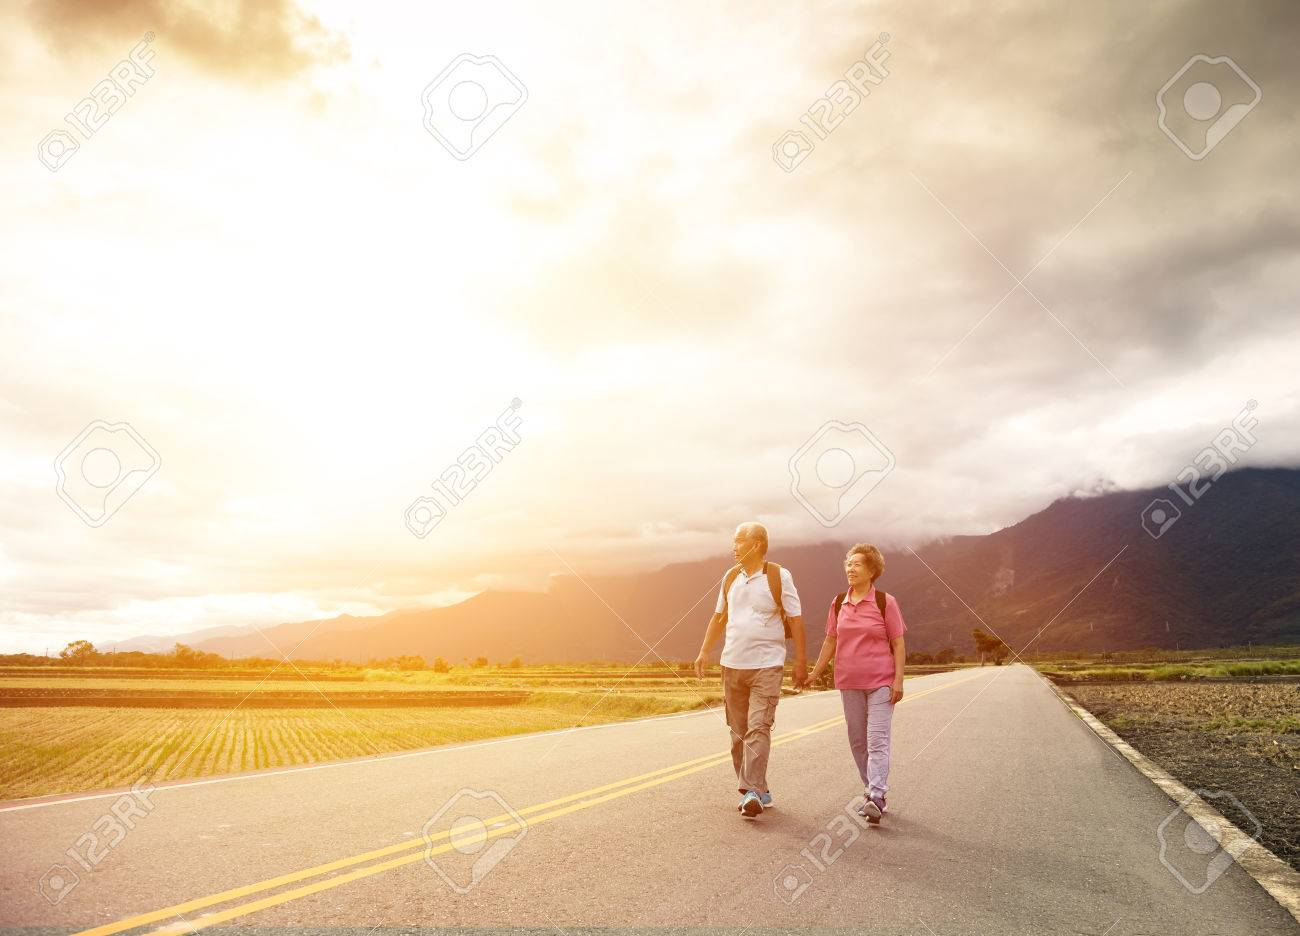 senior couple hiking on the country road - 67438747